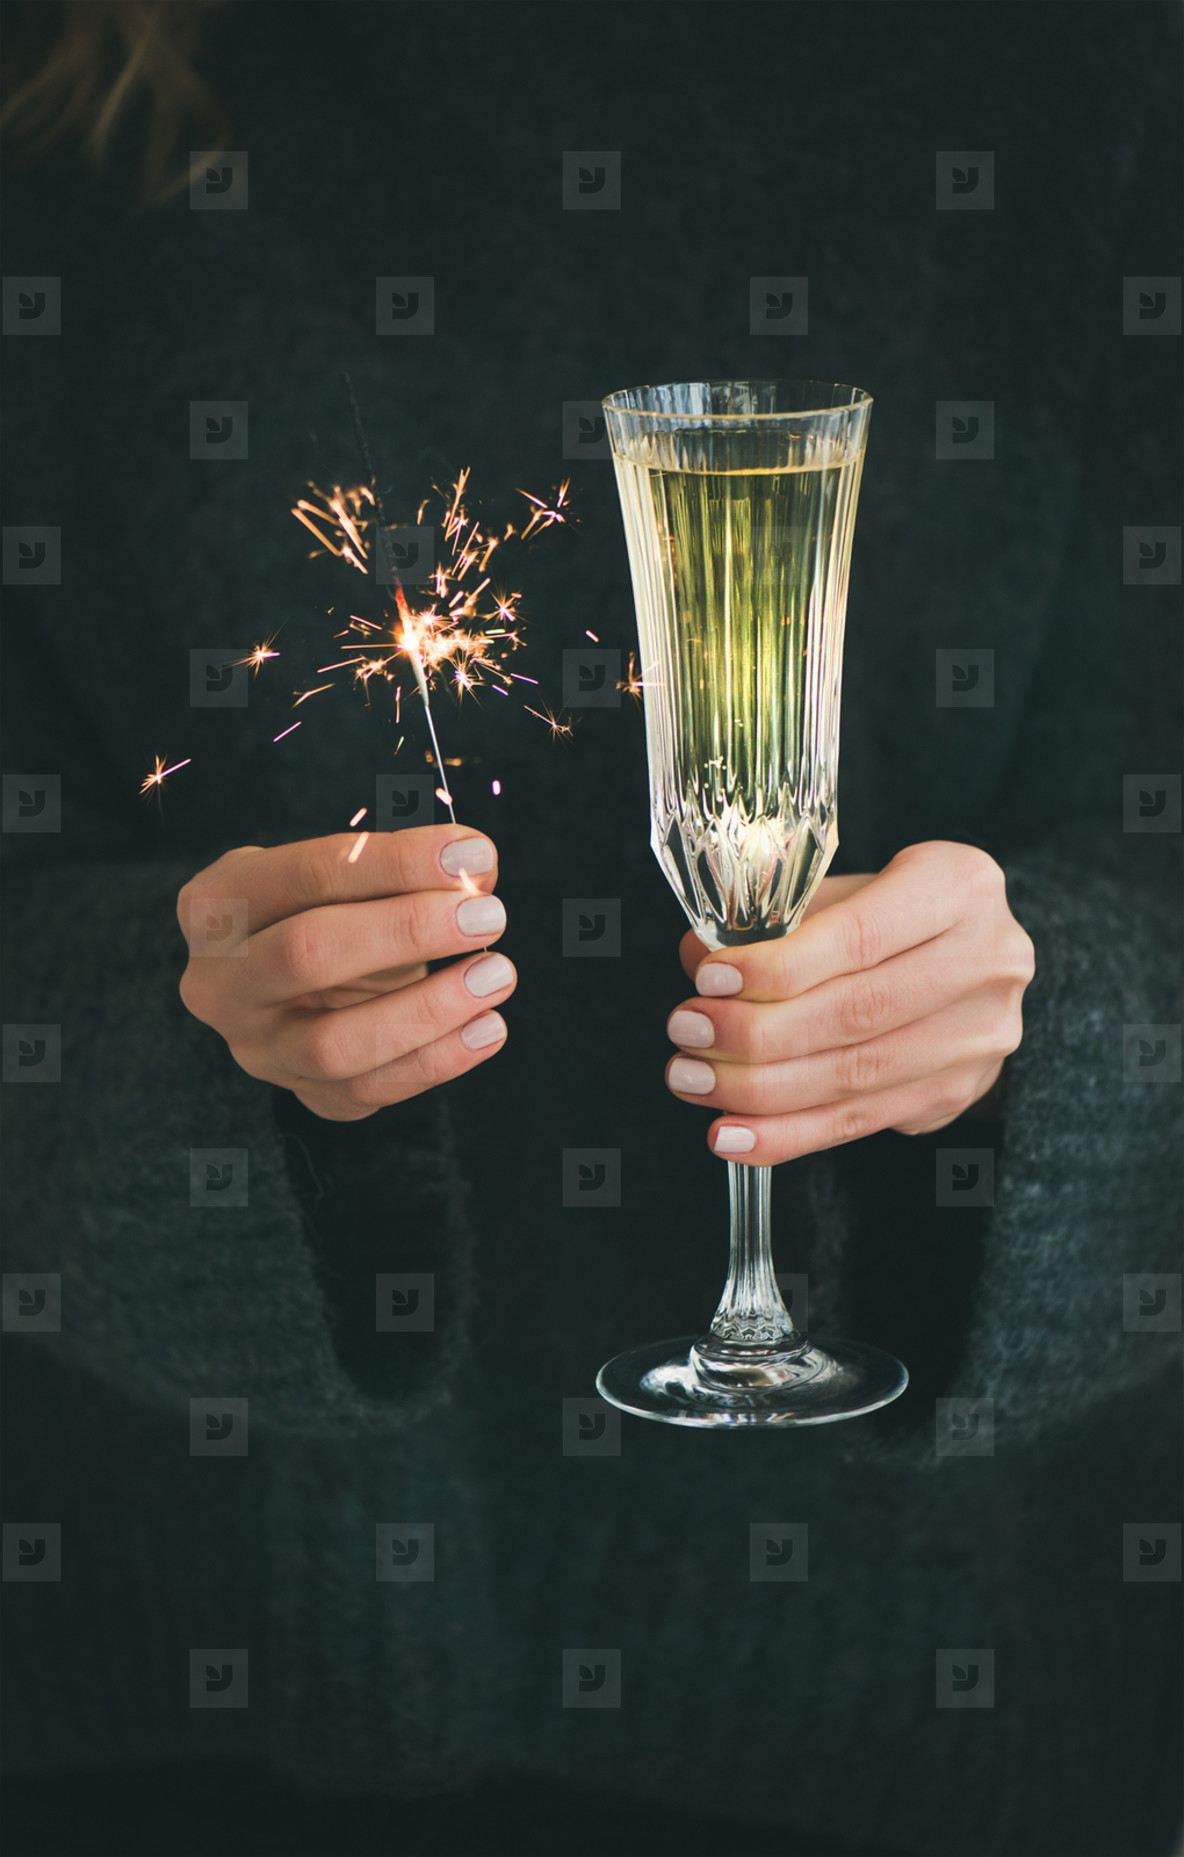 Woman in grey sweater holding sparklers and glass of champagne